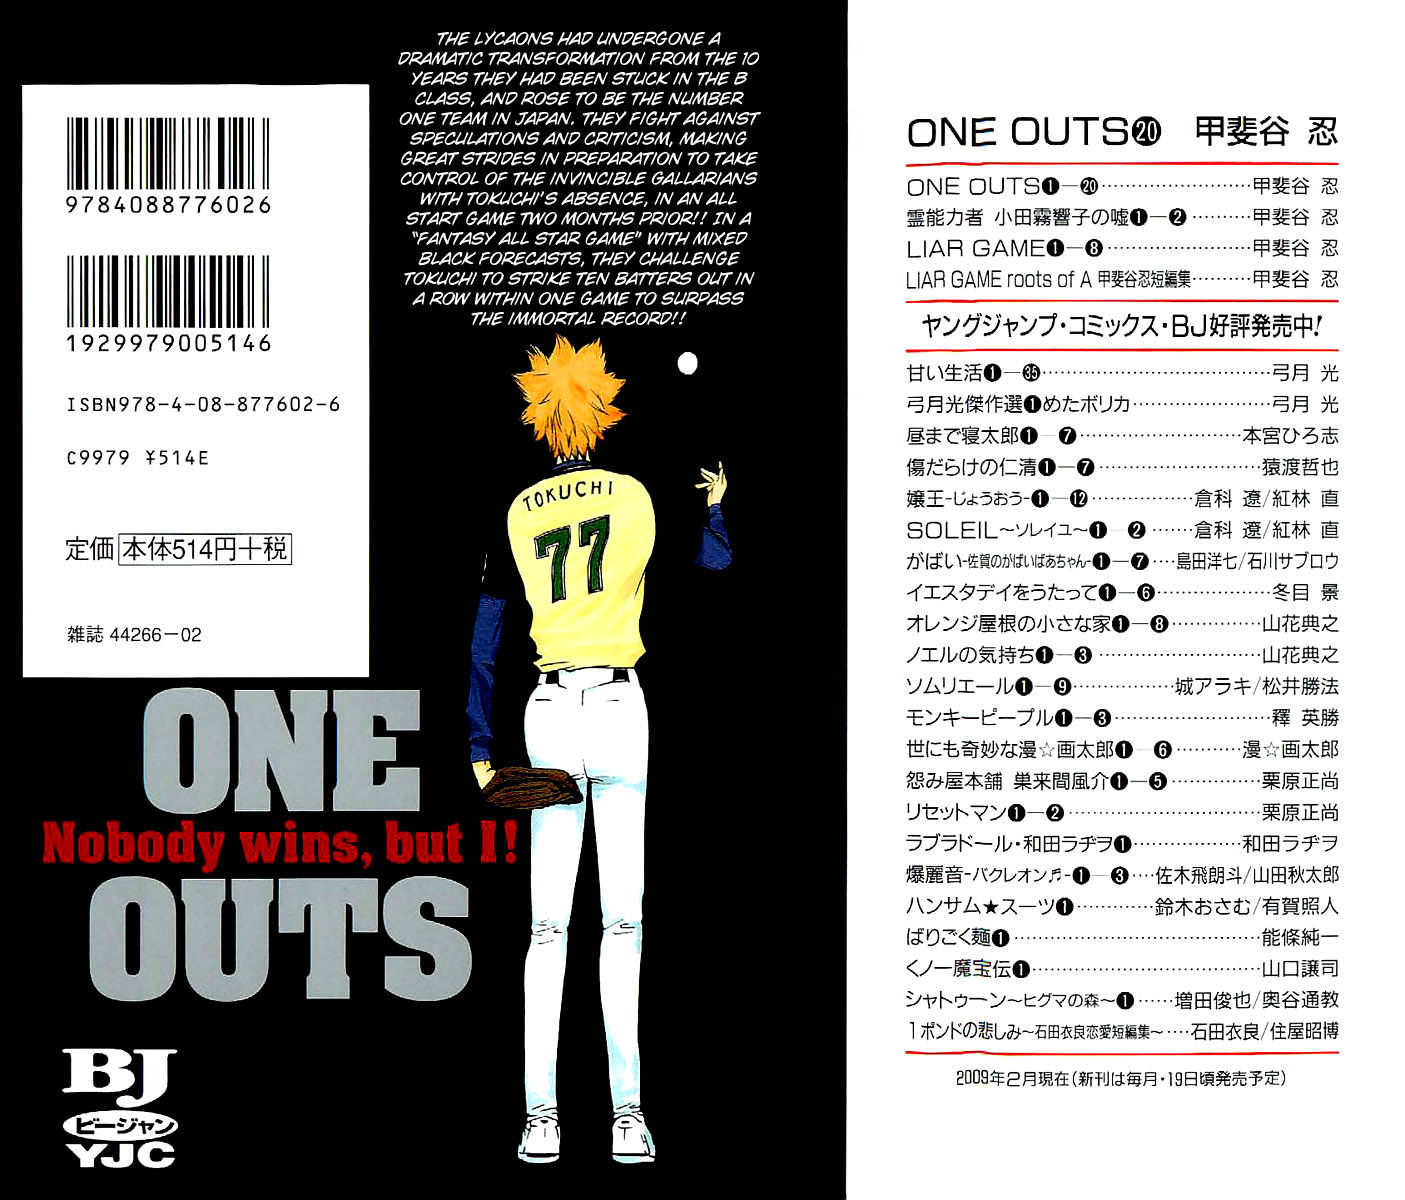 One Outs 168.1 Page 3